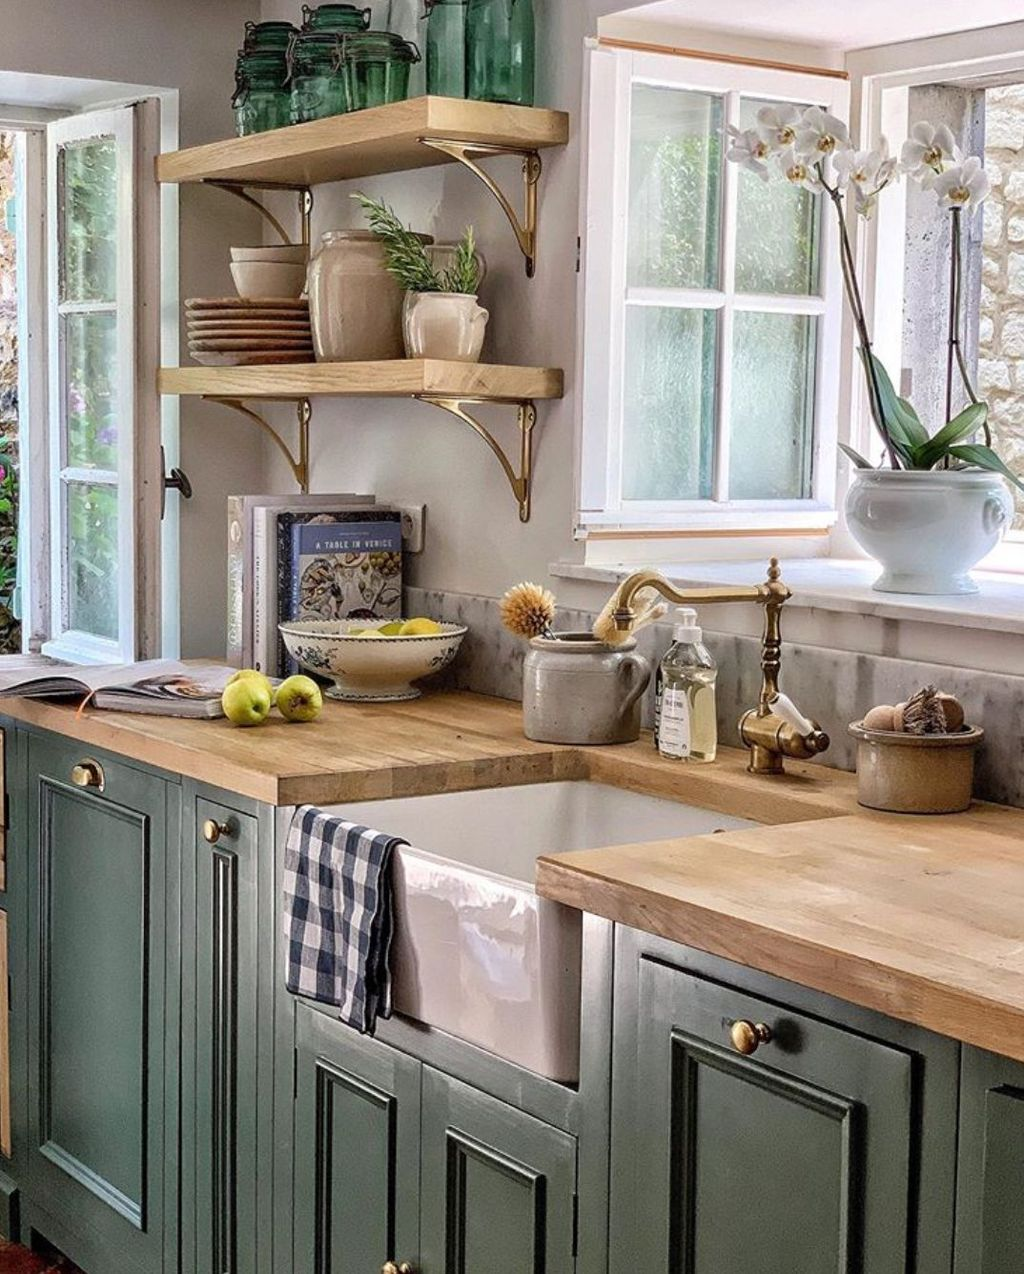 Inspiring Country Kitchen Decor Ideas You Should Copy 33